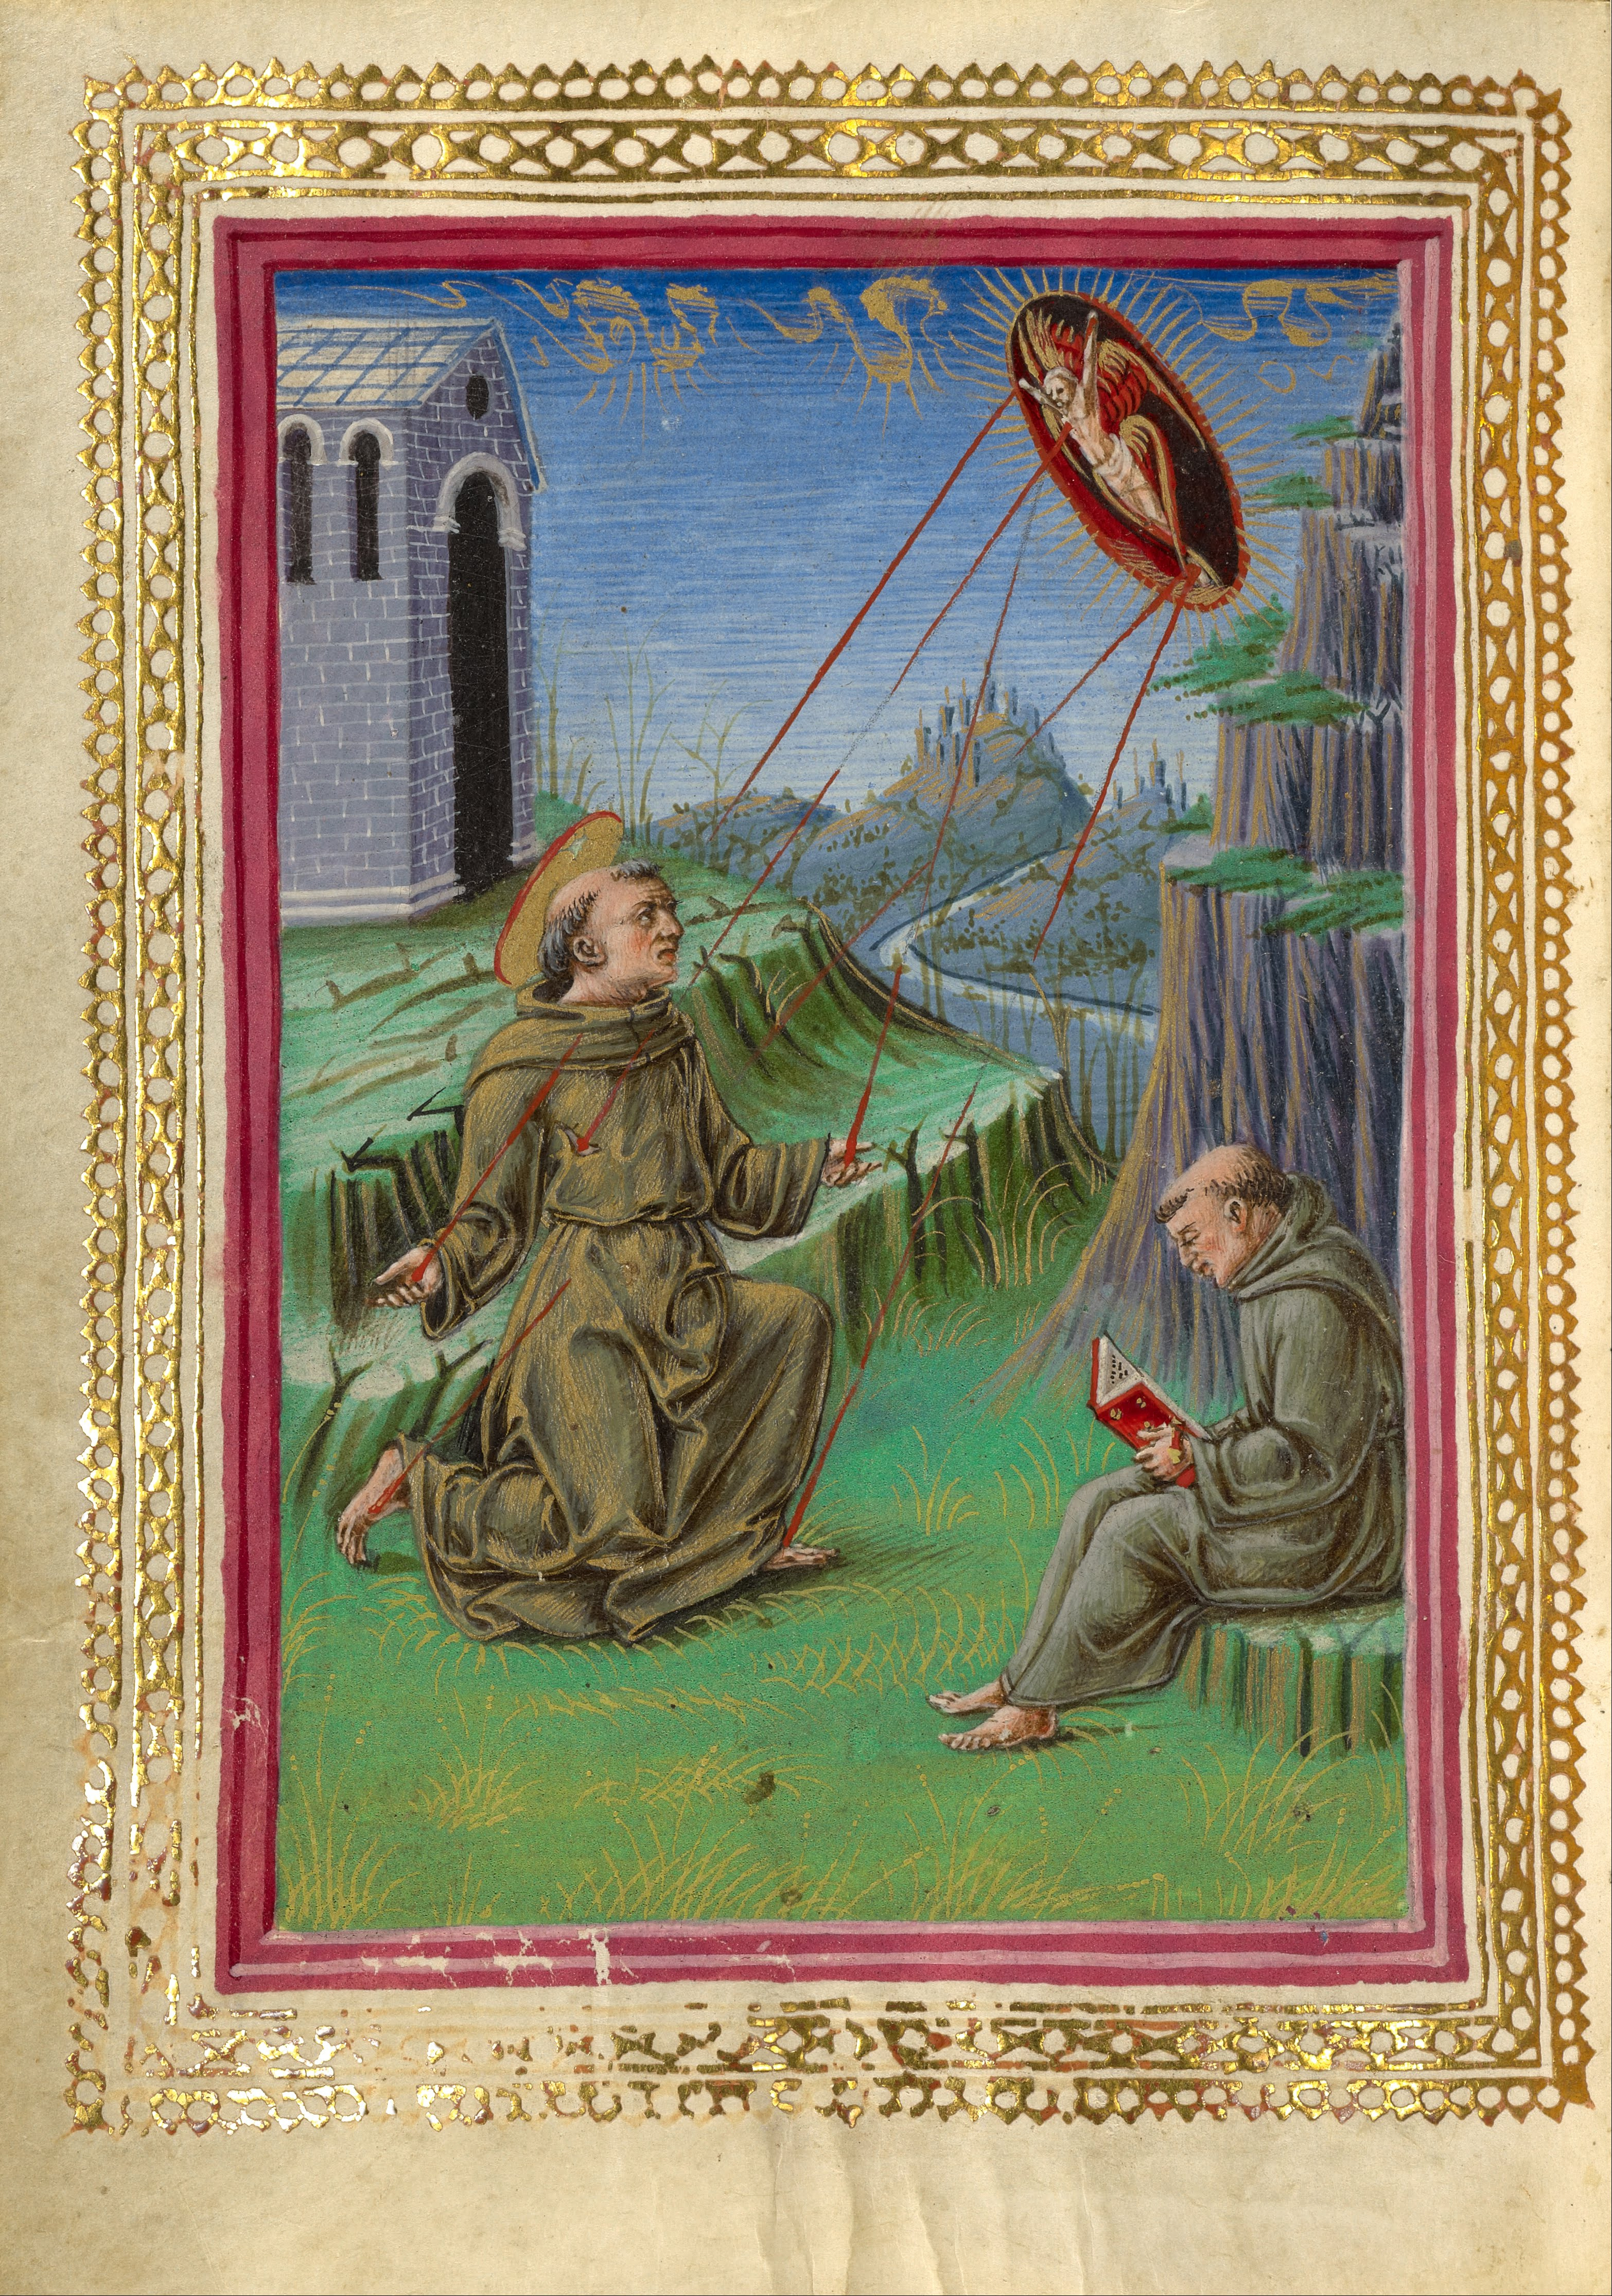 File:Taddeo Crivelli (Italian, died about 1479, active about 1451 - 1479